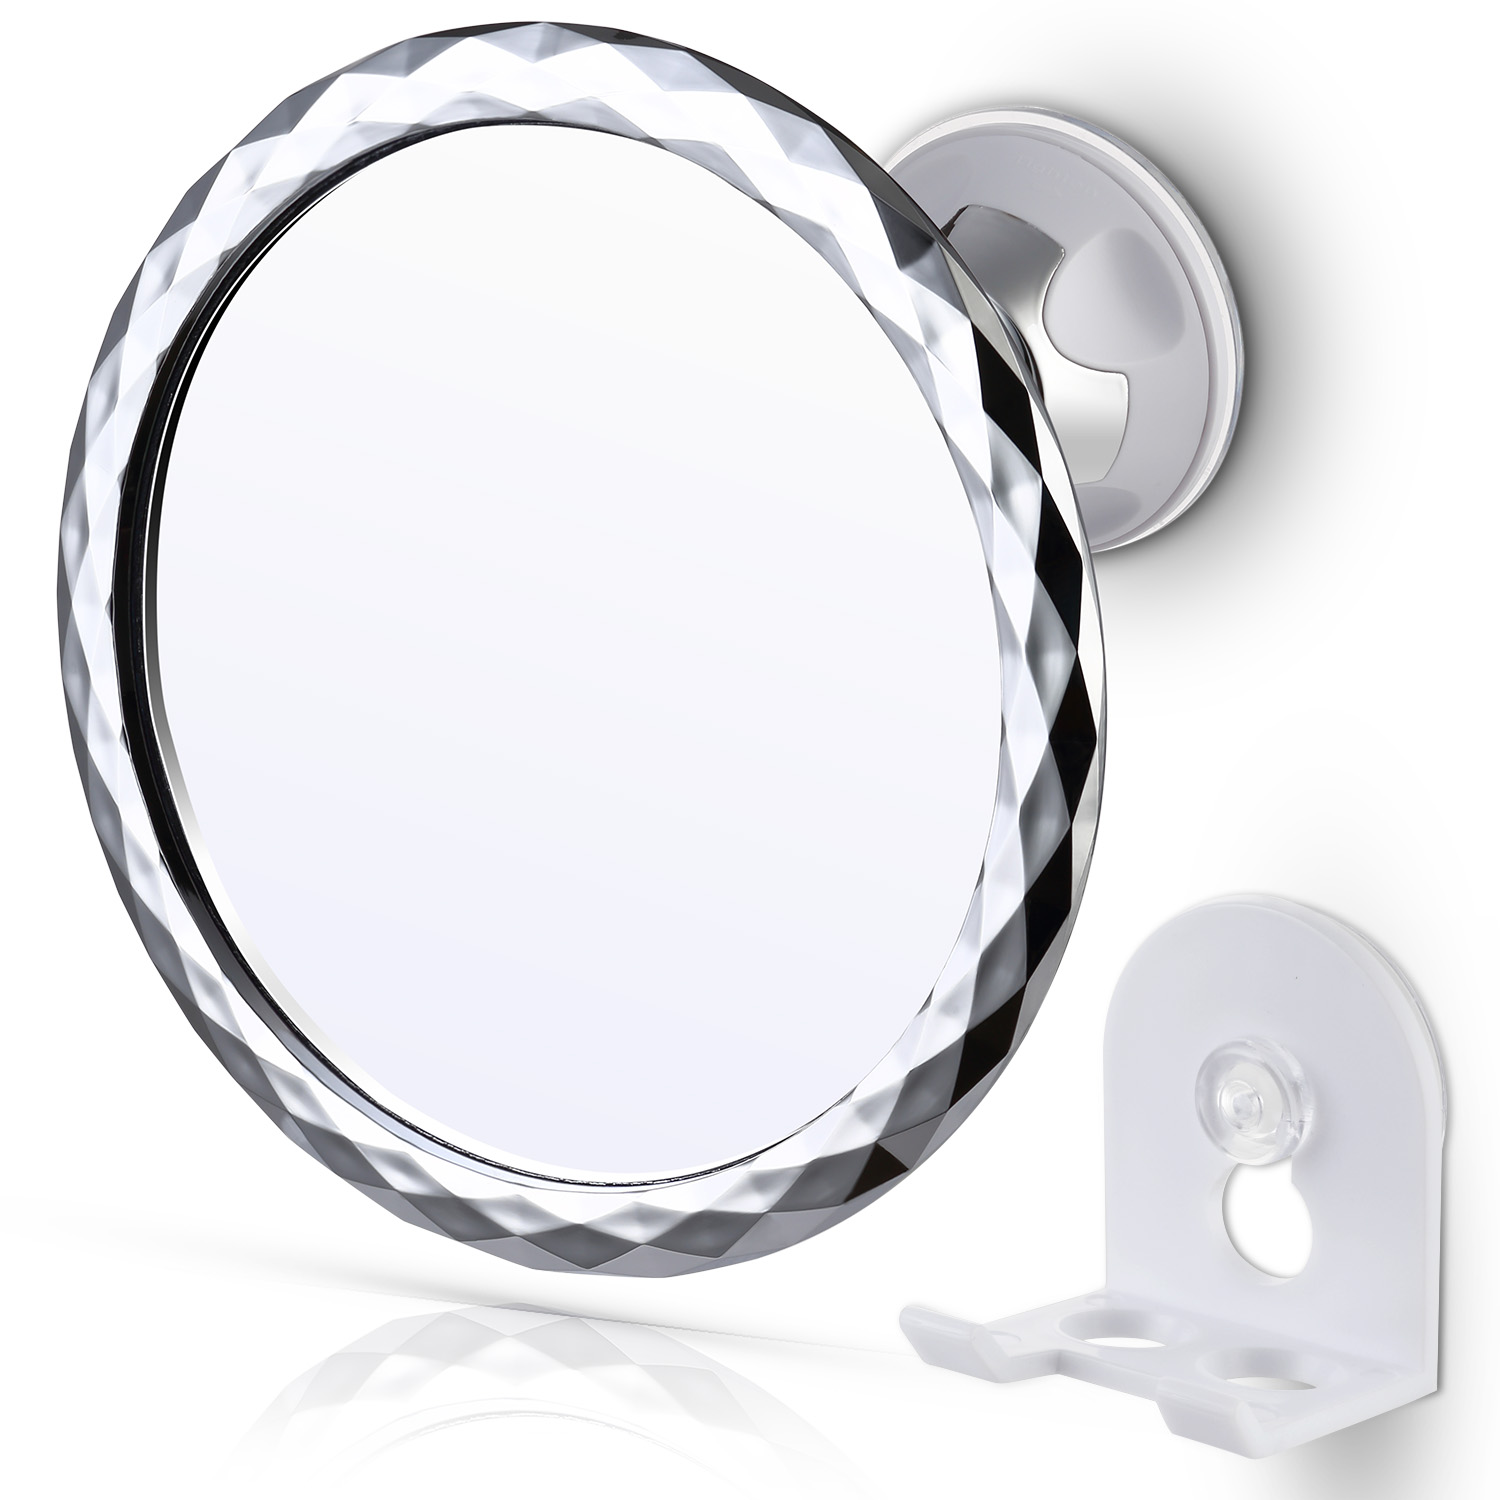 Miusco Fogless Shower Shaving Mirror With Suction Cup Razor Holder, Flexible Rotation Arm and Powerful Locking Suction Cup Mount, Chrome, 5.75 Inch, Round